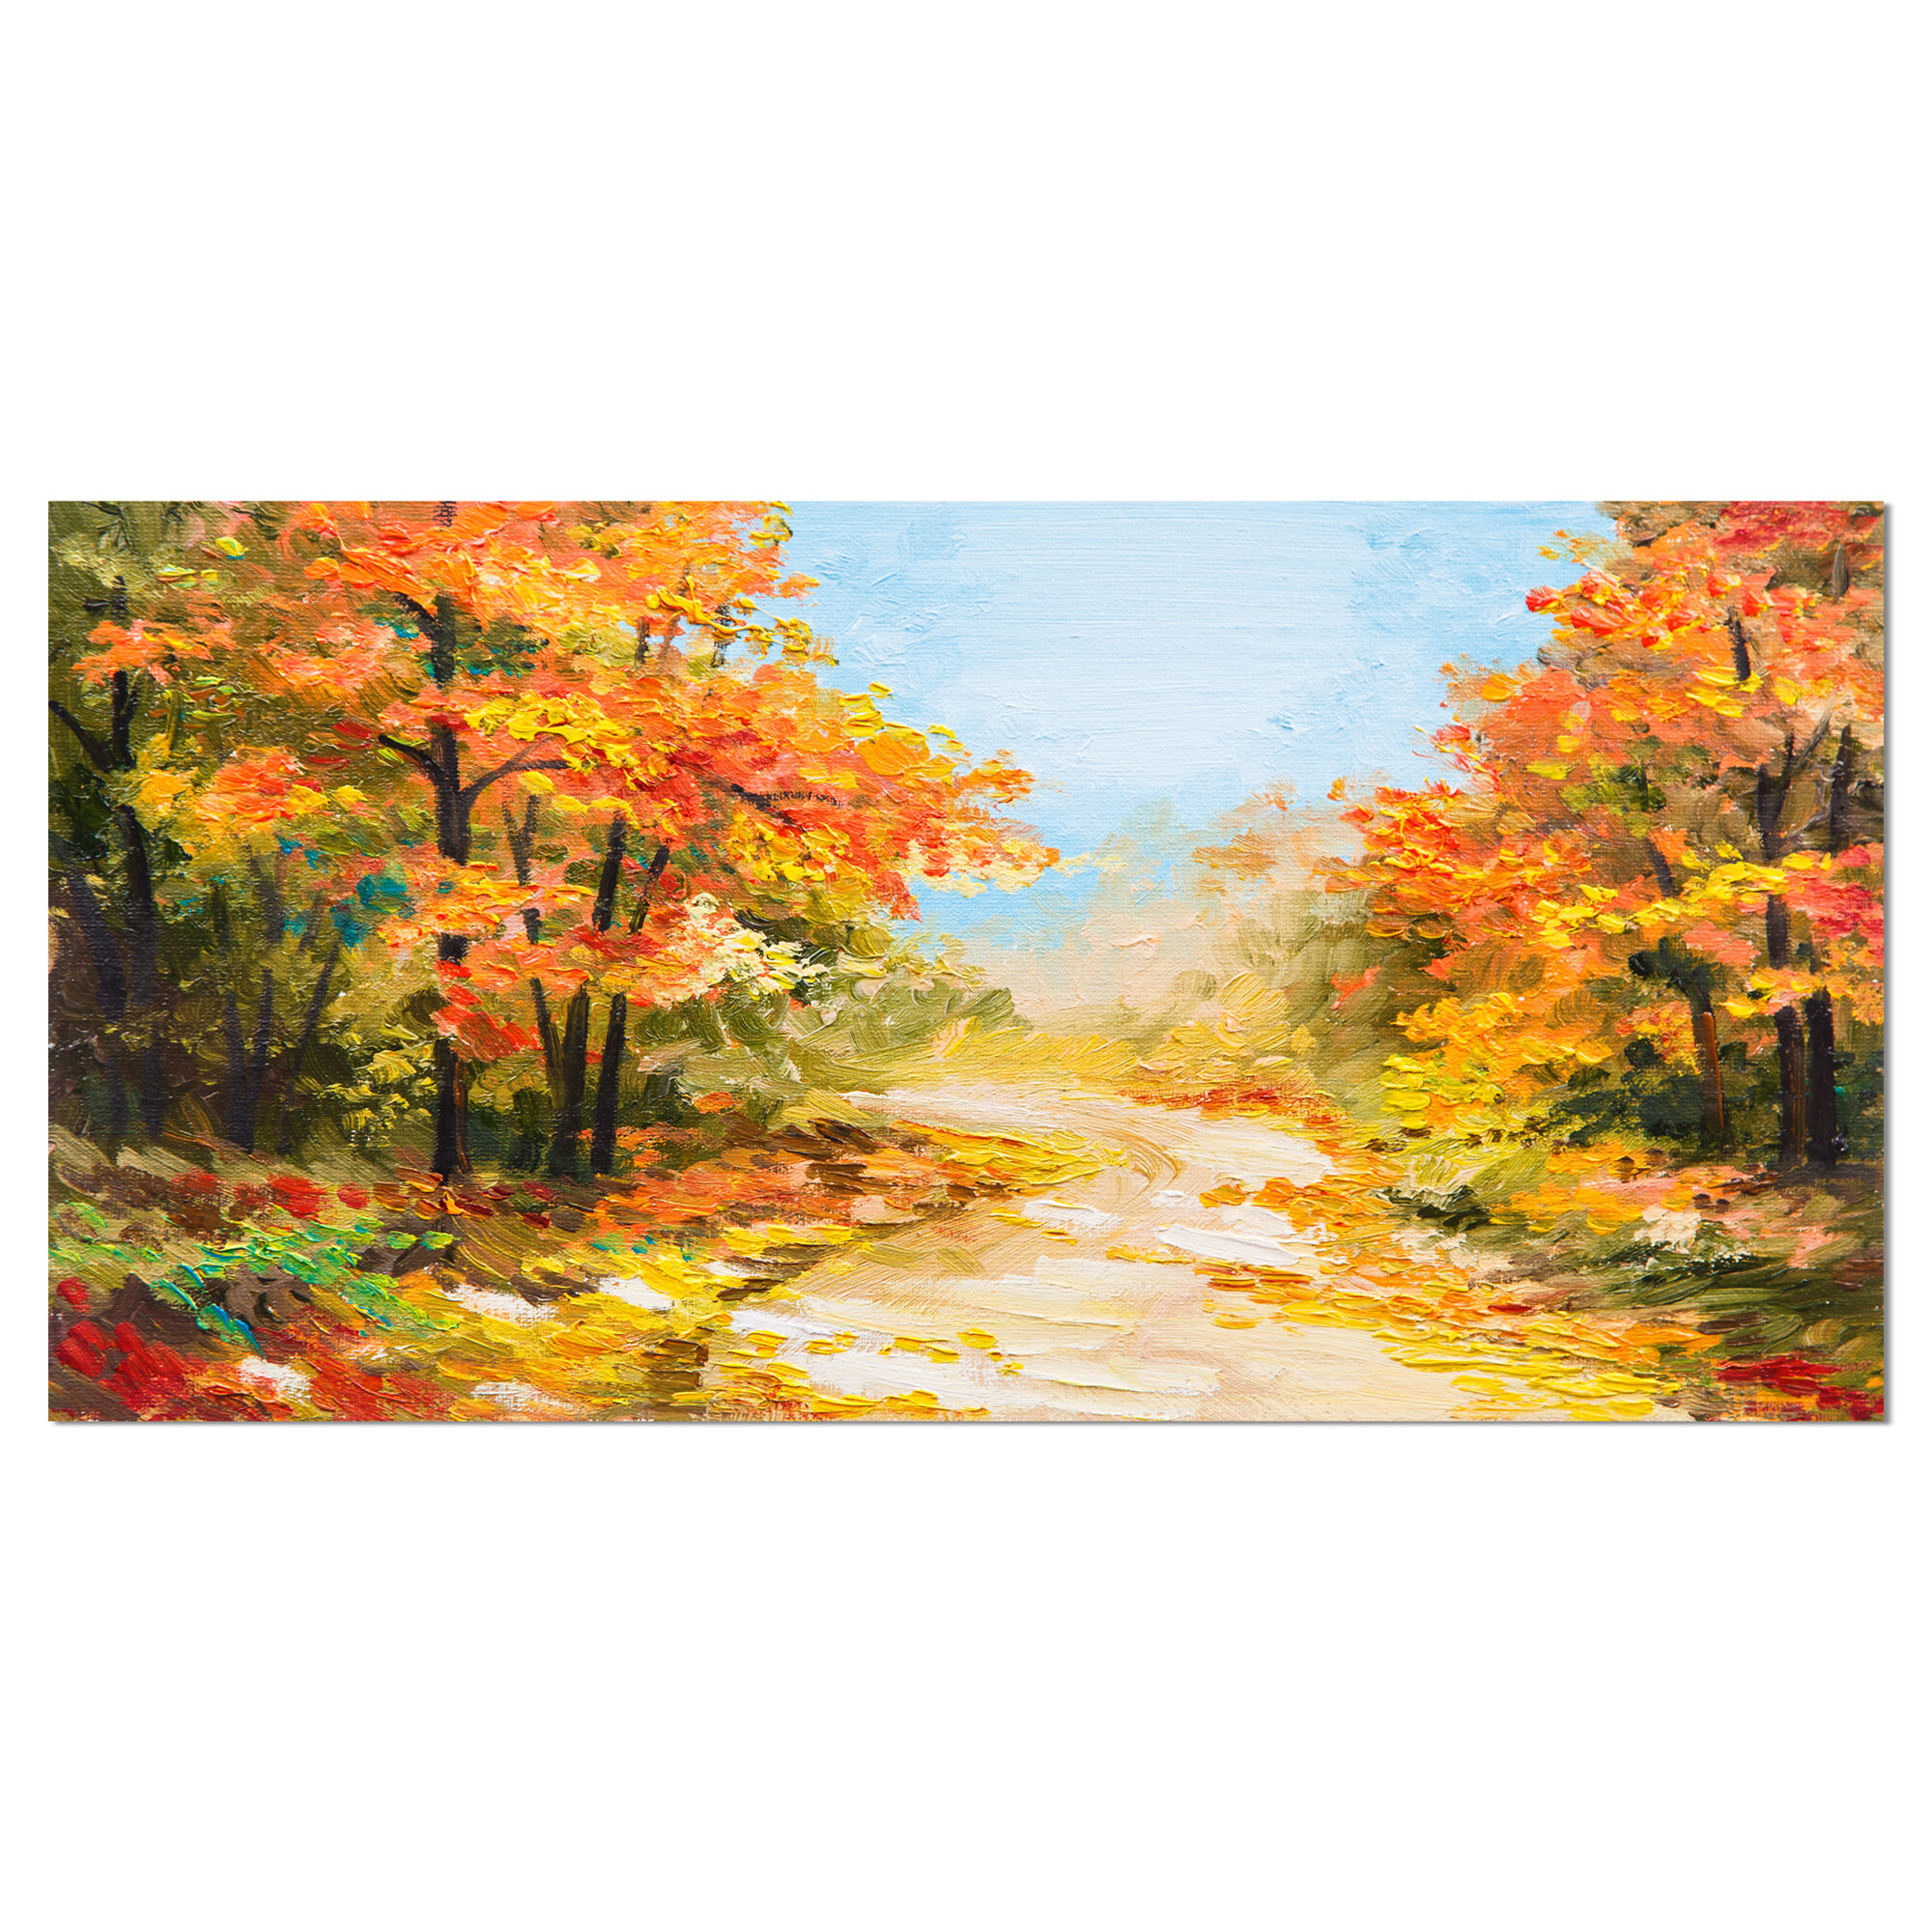 DesignArt Path in Autumn Forest Landscape Painting Print on Wrapped ...